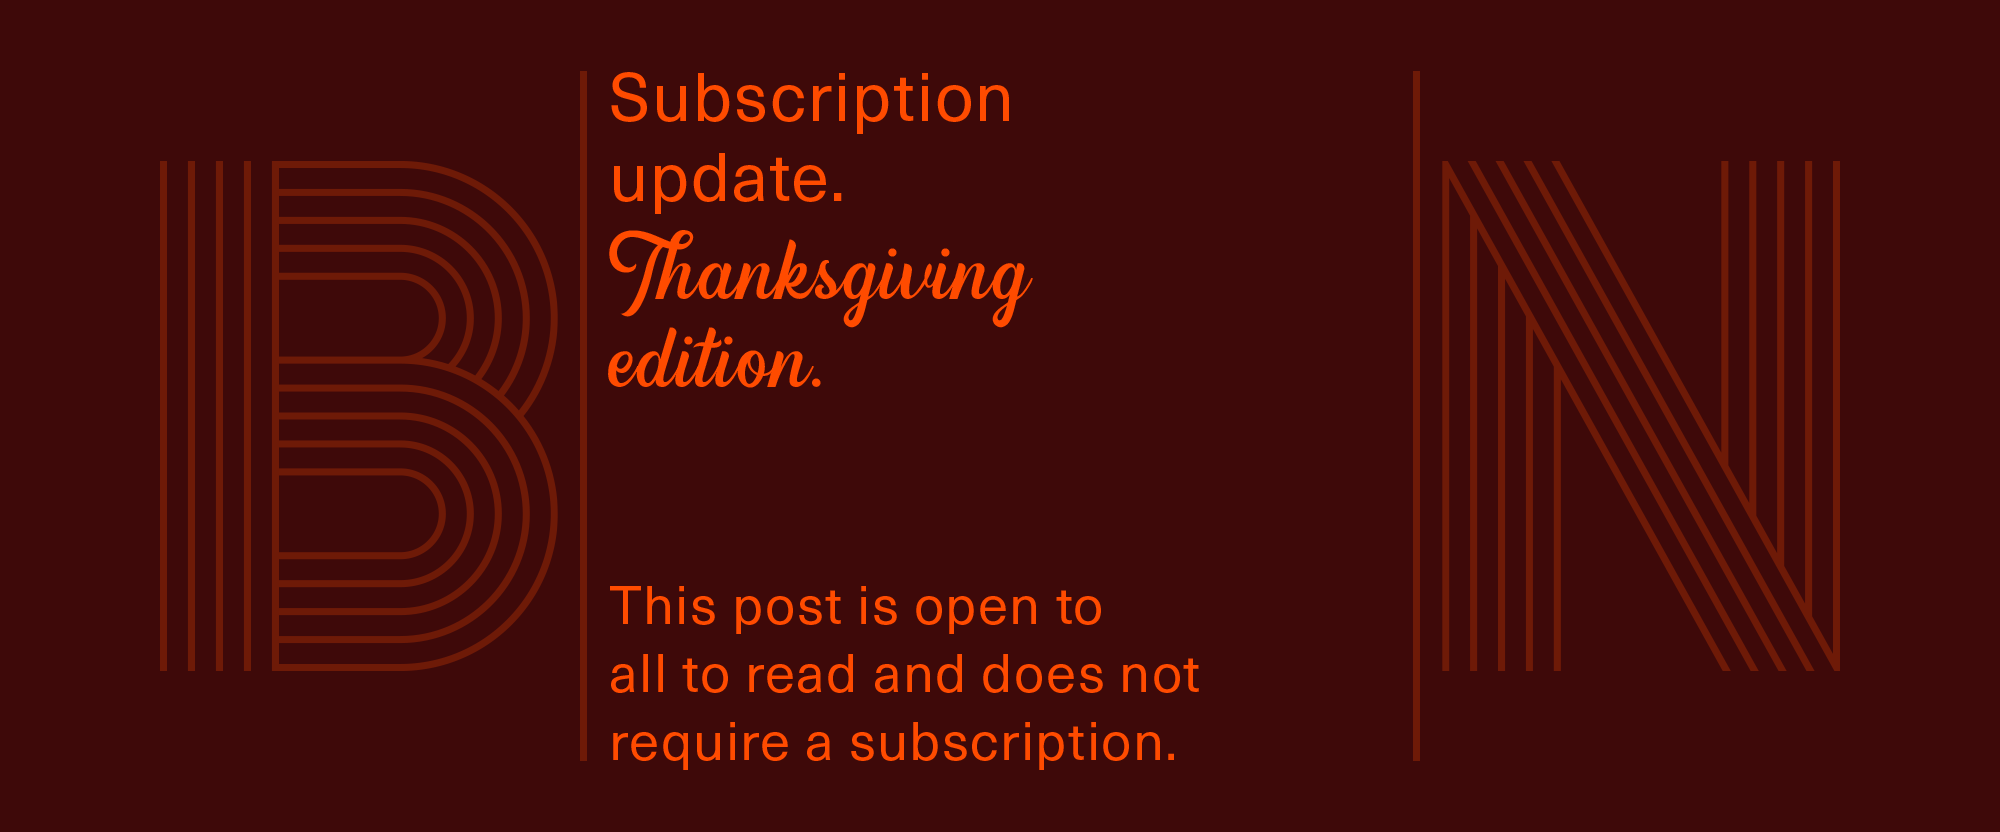 Subscription Model Update